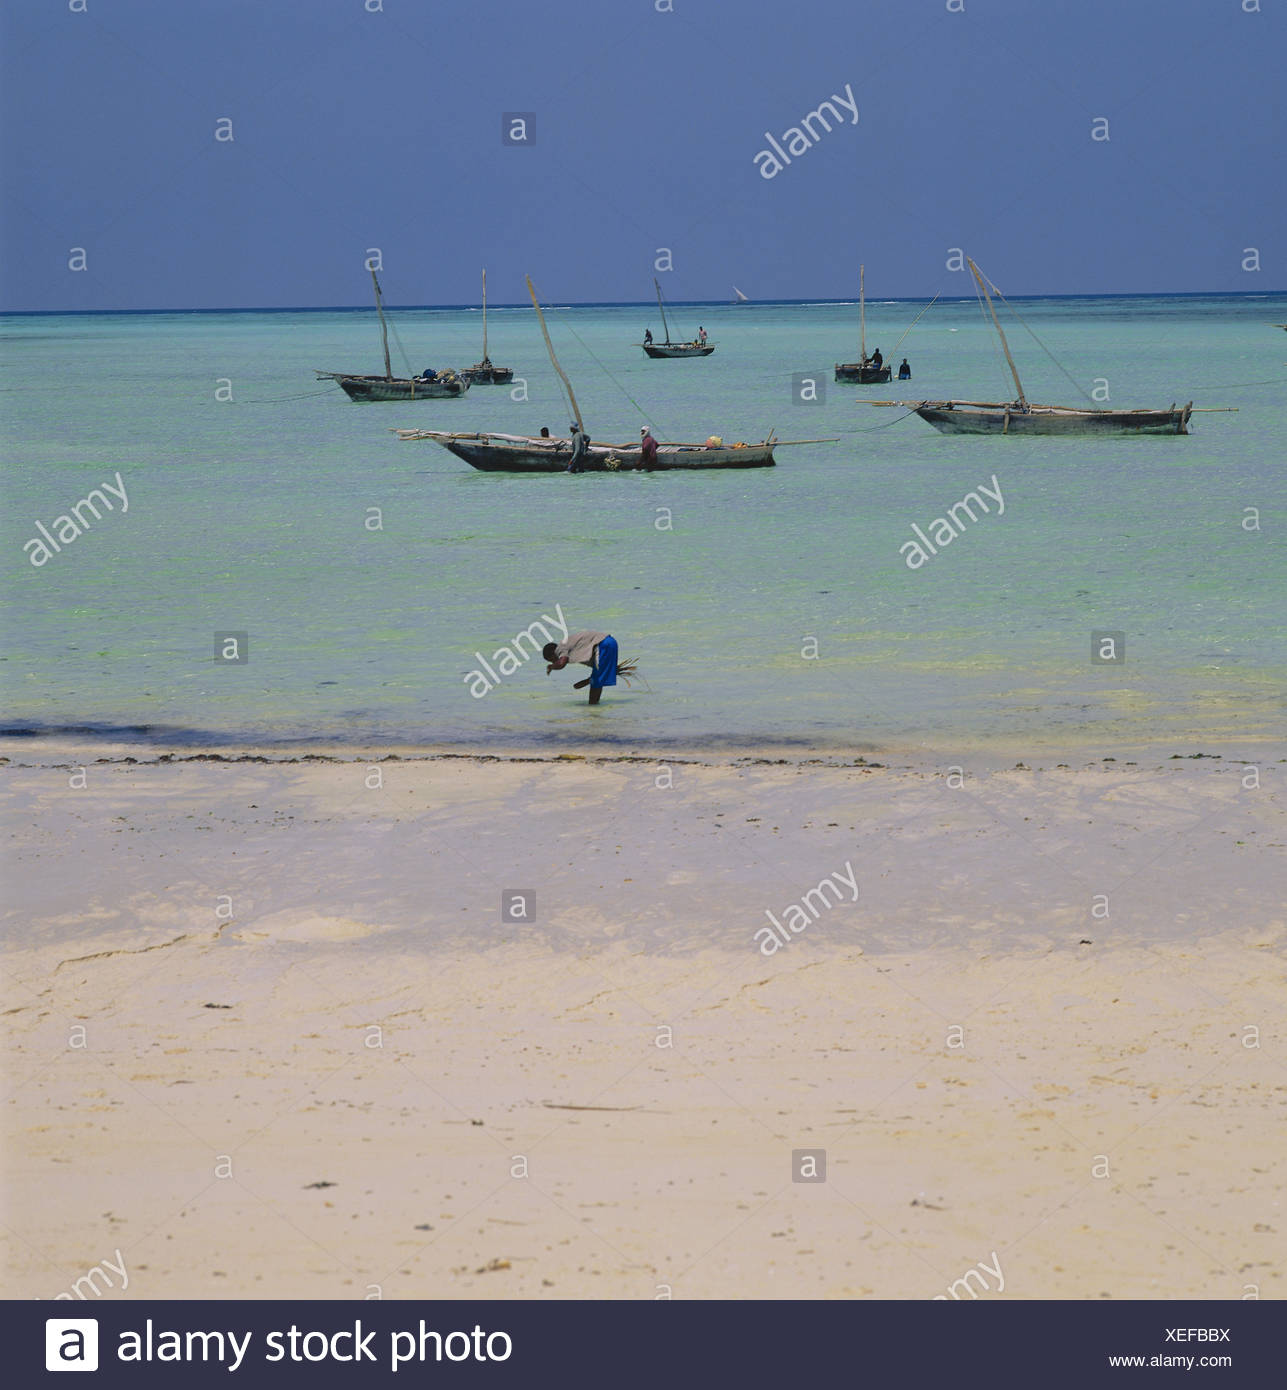 Nungwi Beach Stock Photos Nungwi Beach Stock Images Alamy